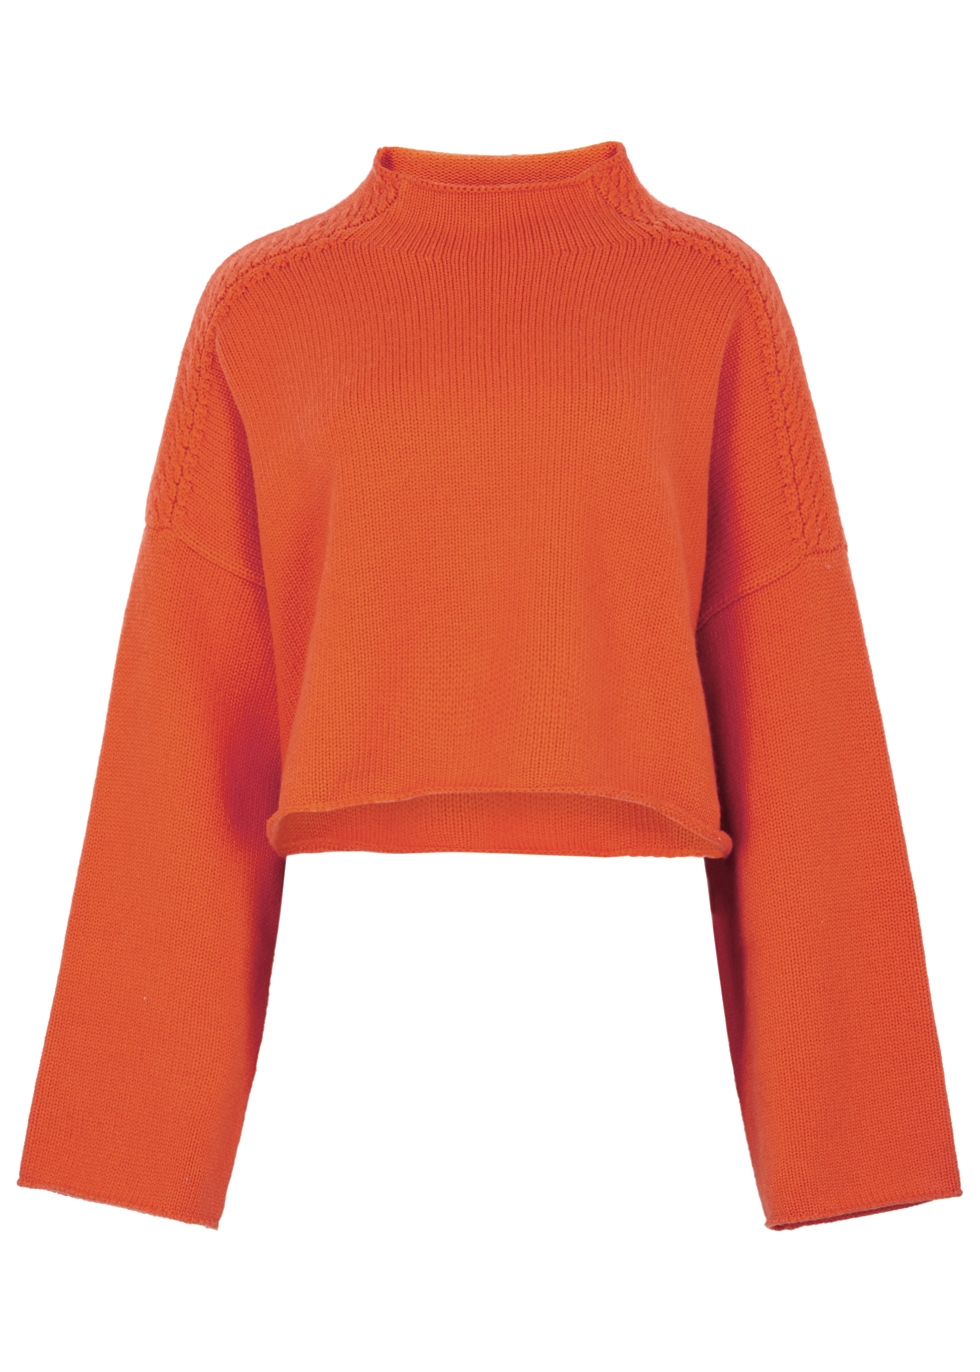 J.W.ANDERSON ORANGE CROPPED WOOL-BLEND JUMPER